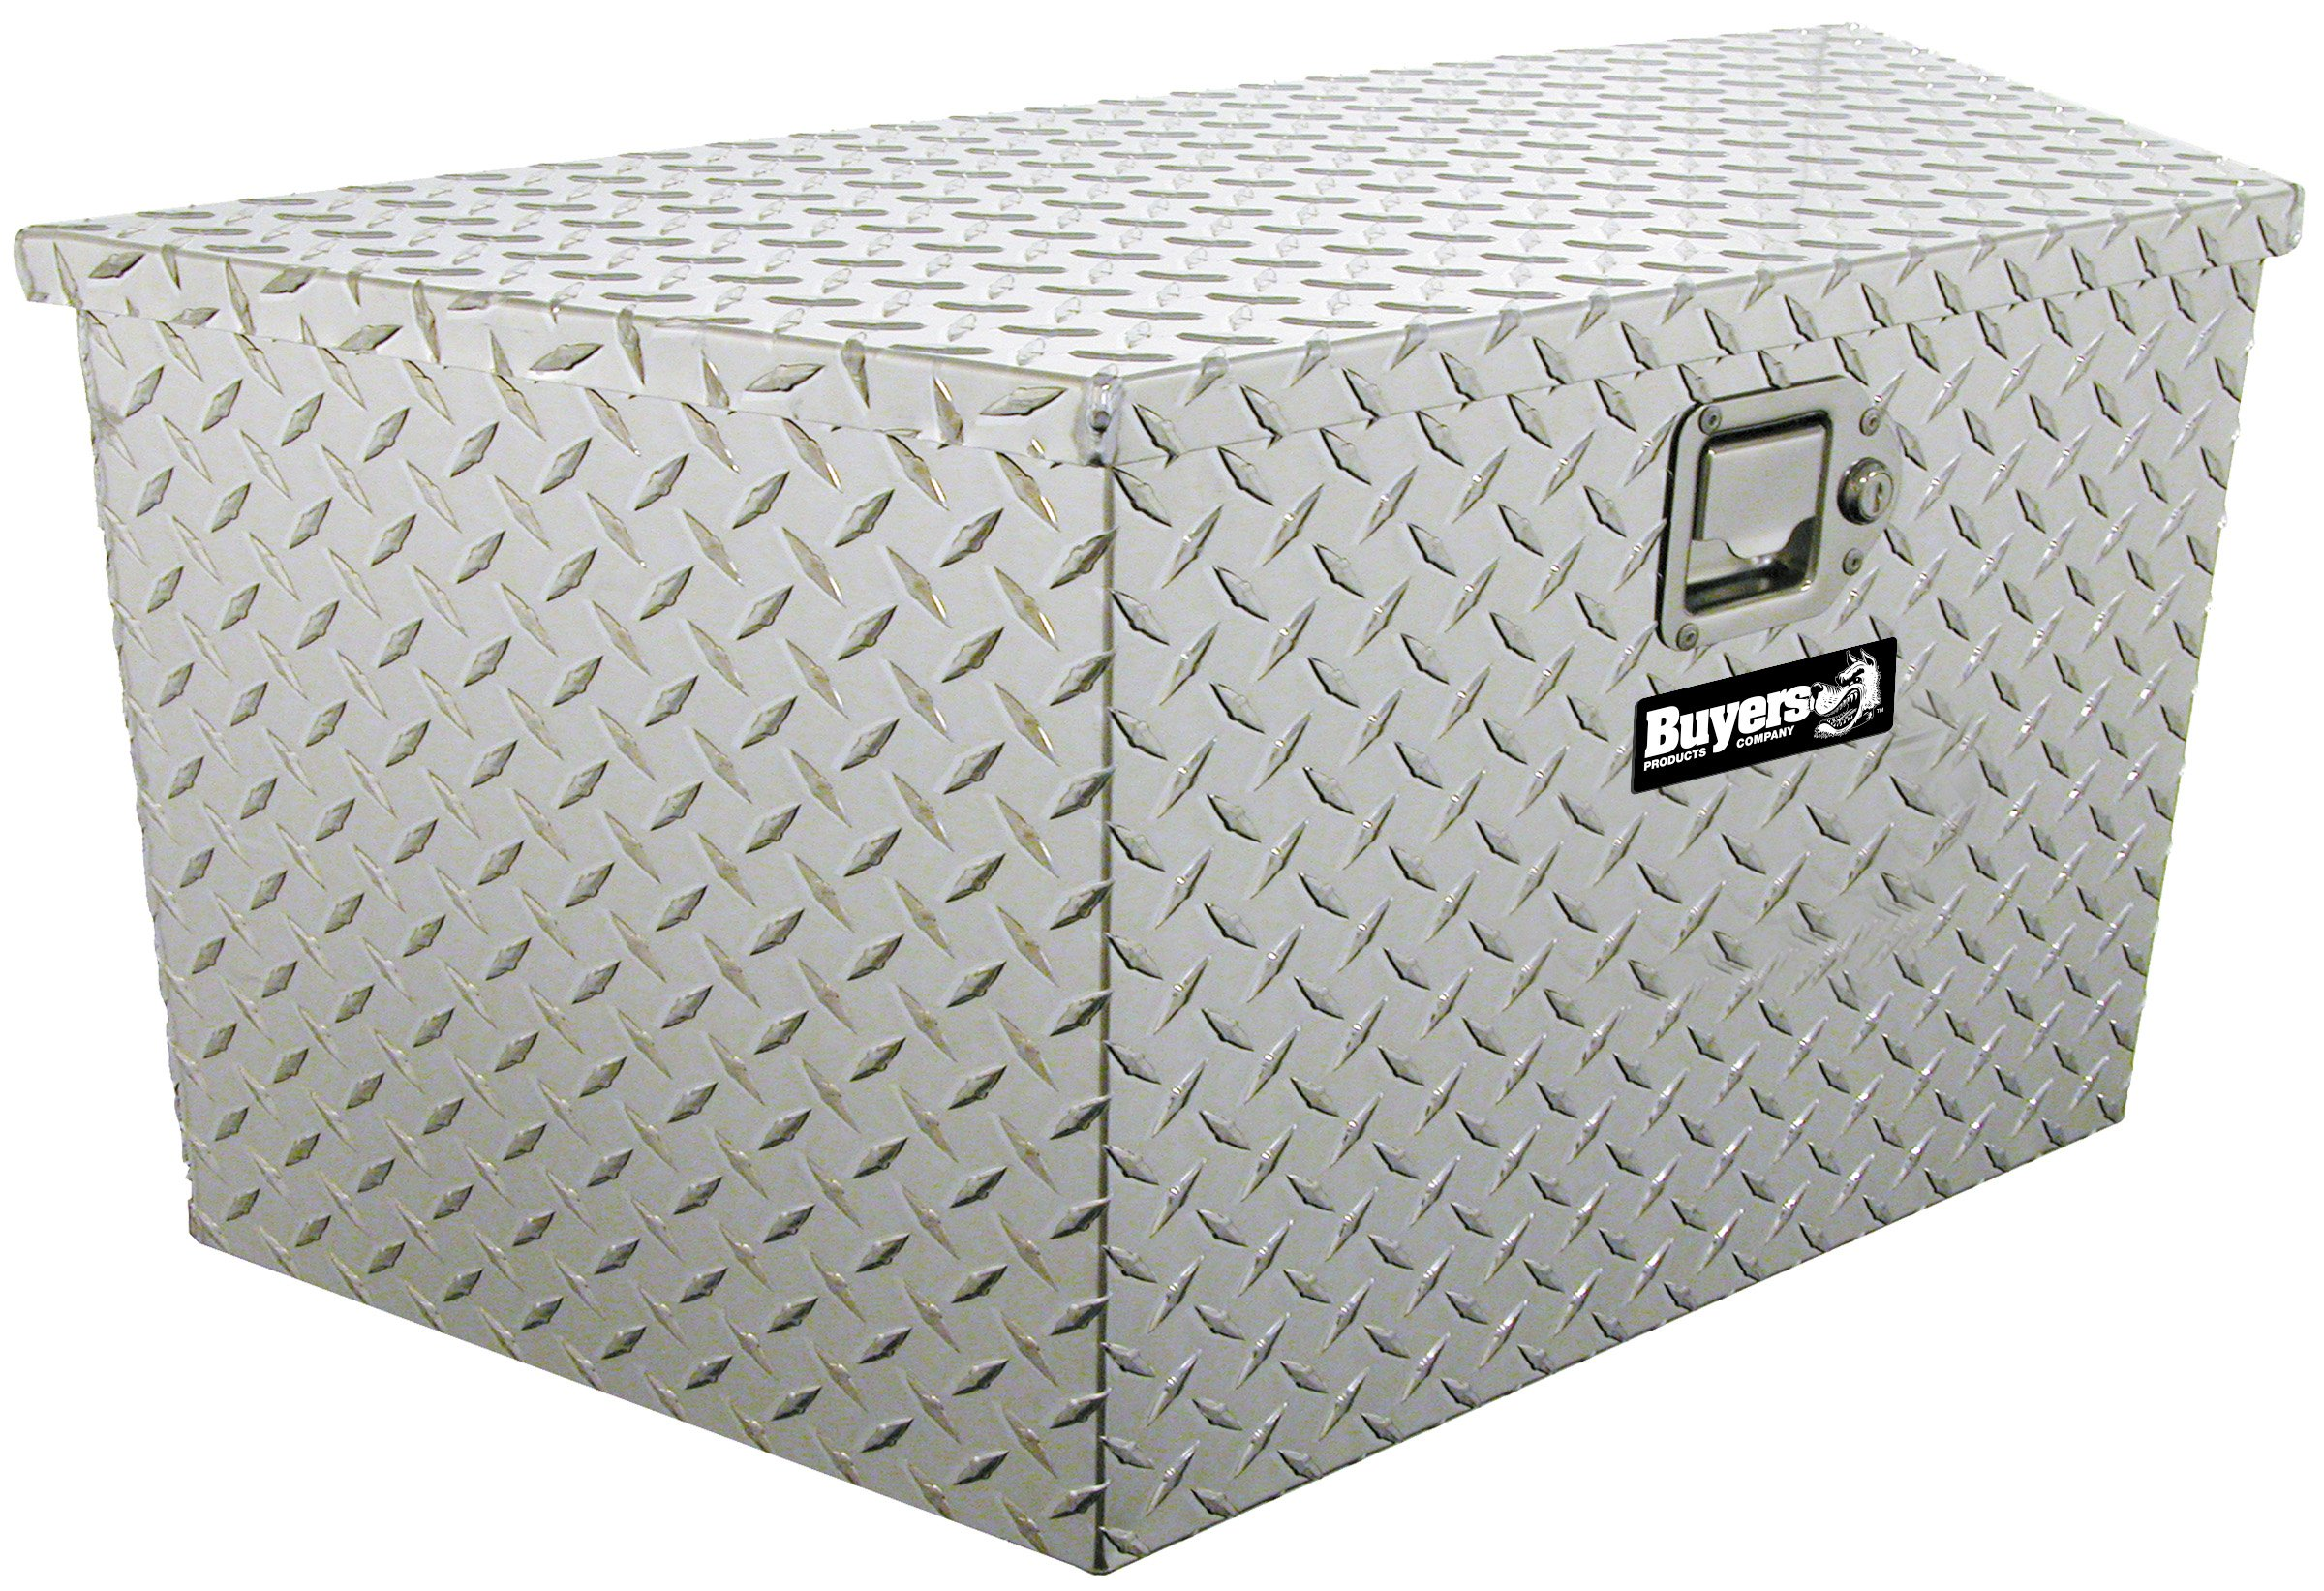 Buyers Products Diamond Tread Aluminum Trailer Tongue Truck Box (18.5x15x49/37 Inch) by Buyers Products